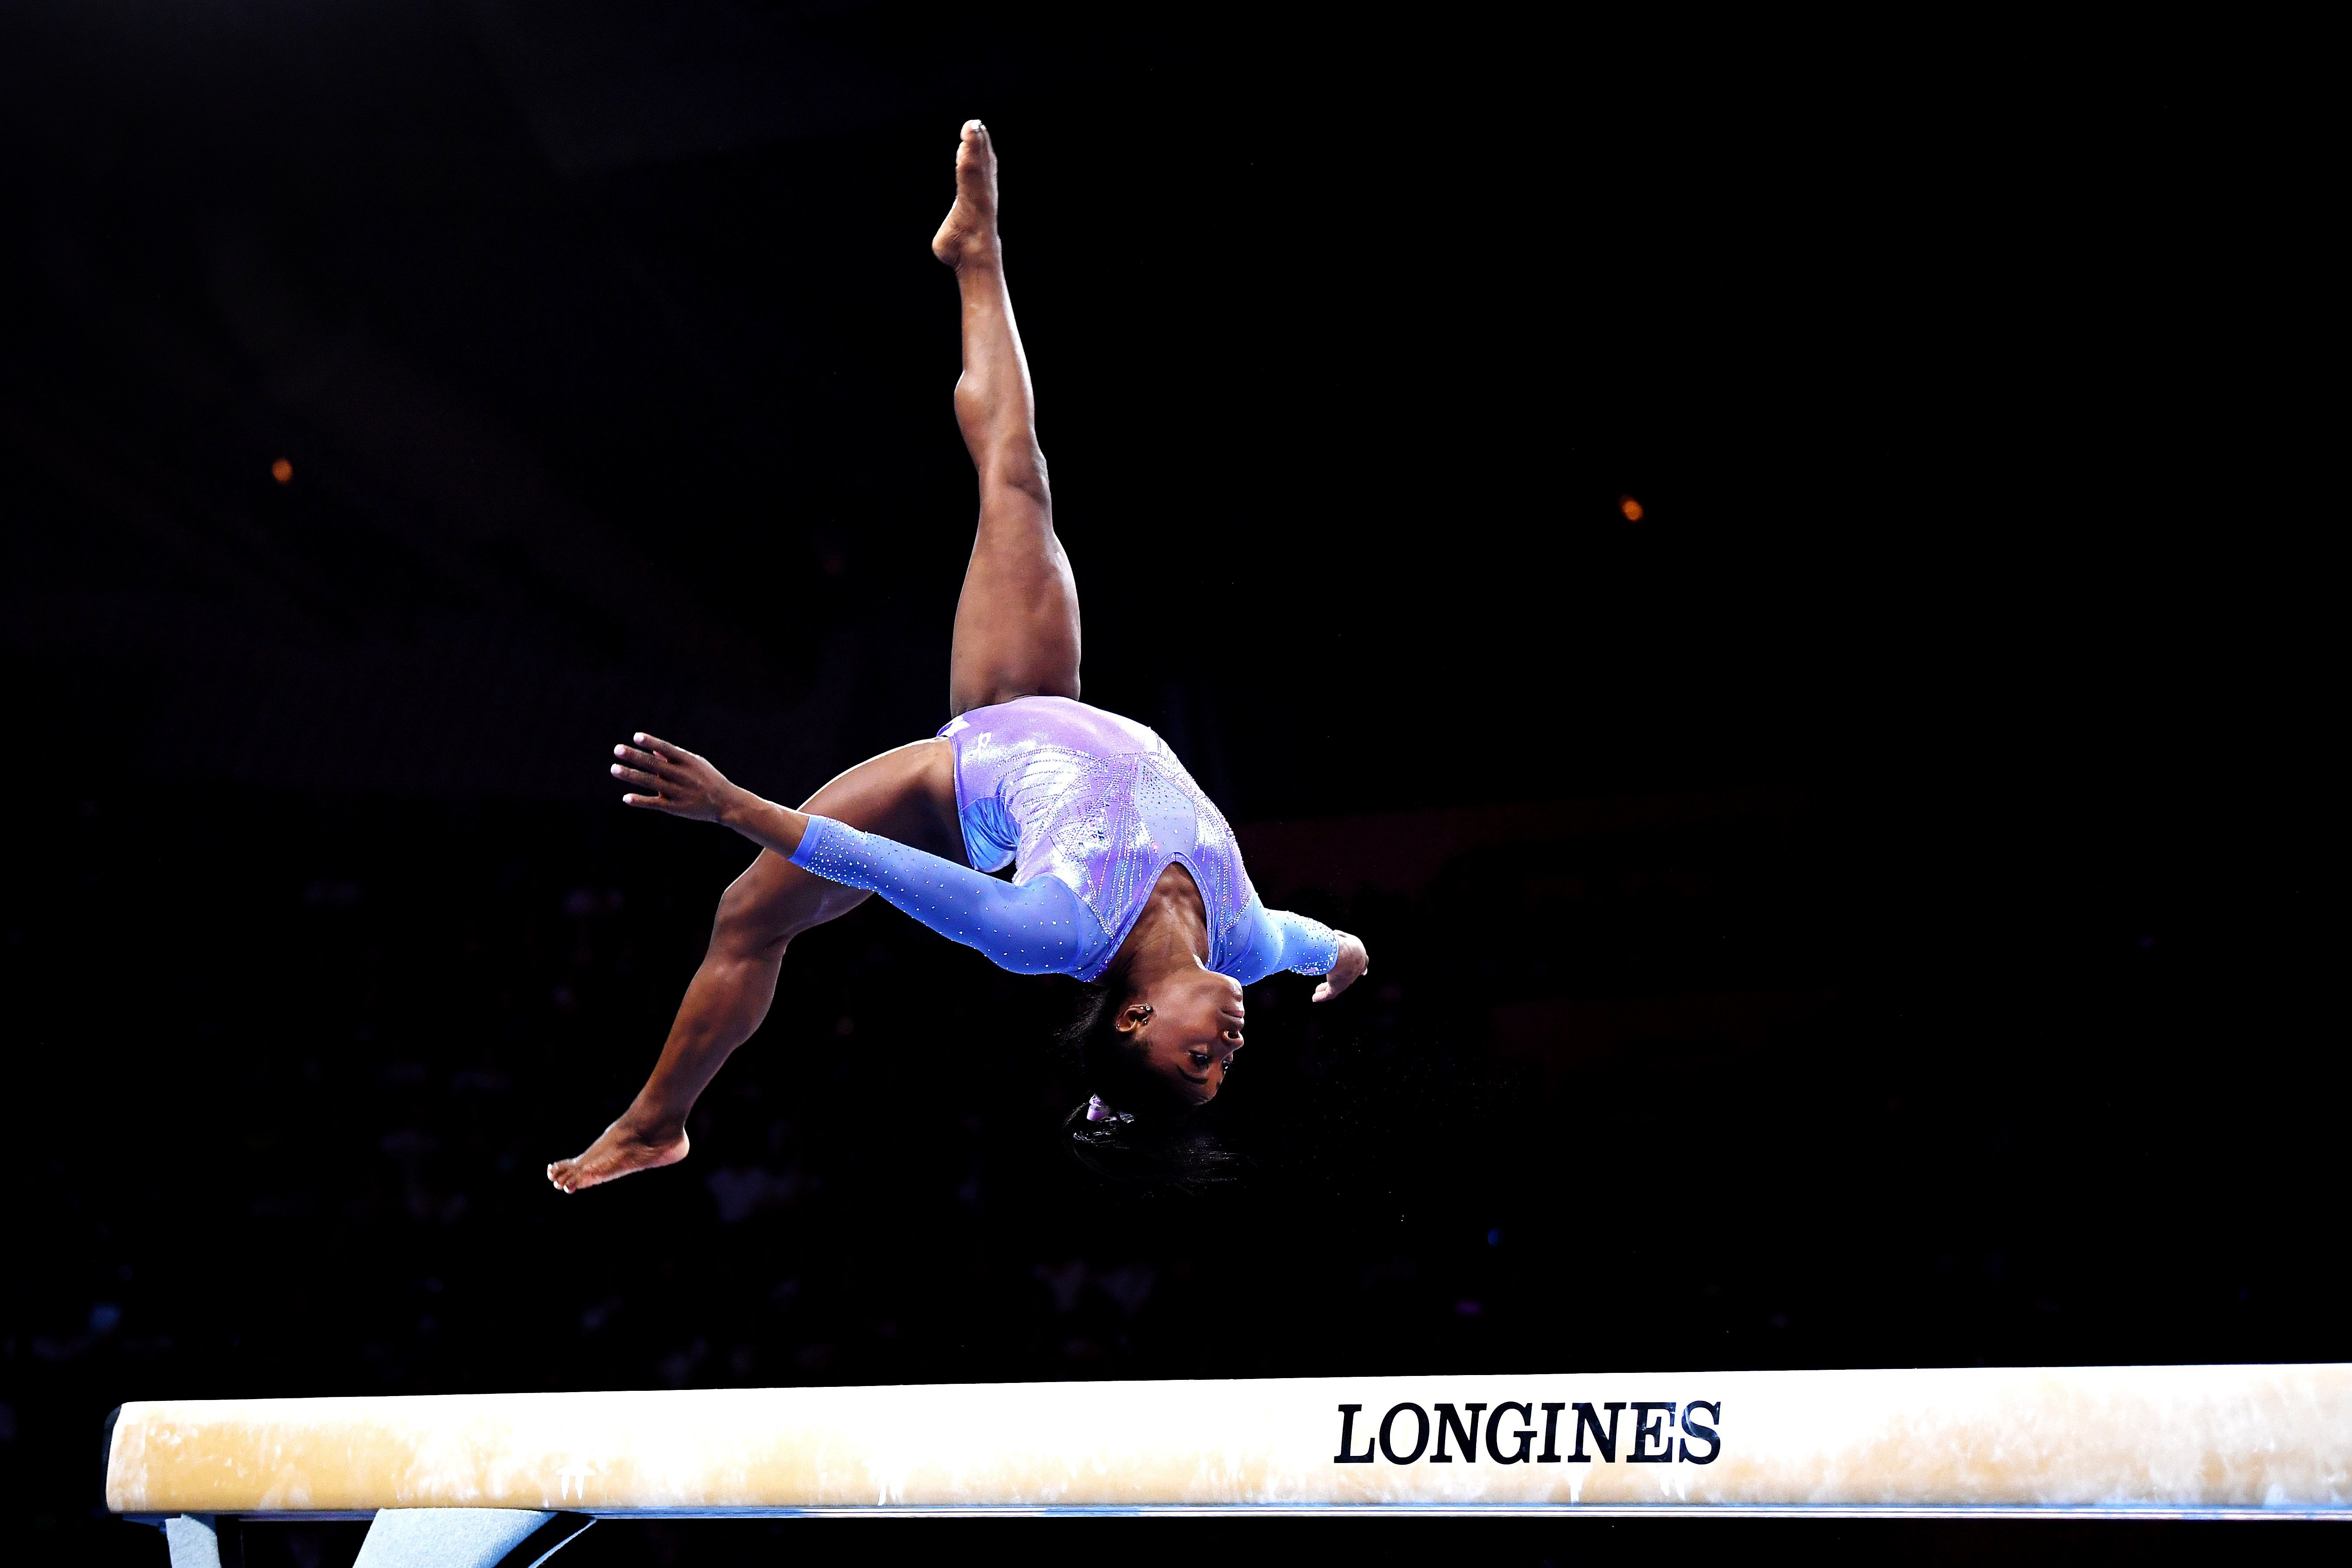 Simone Biles during day 10 of the 49th FIG Artistic Gymnastics World Championships on Oct. 13, 2019 in Stuttgart, Germany | Photo: Getty Images